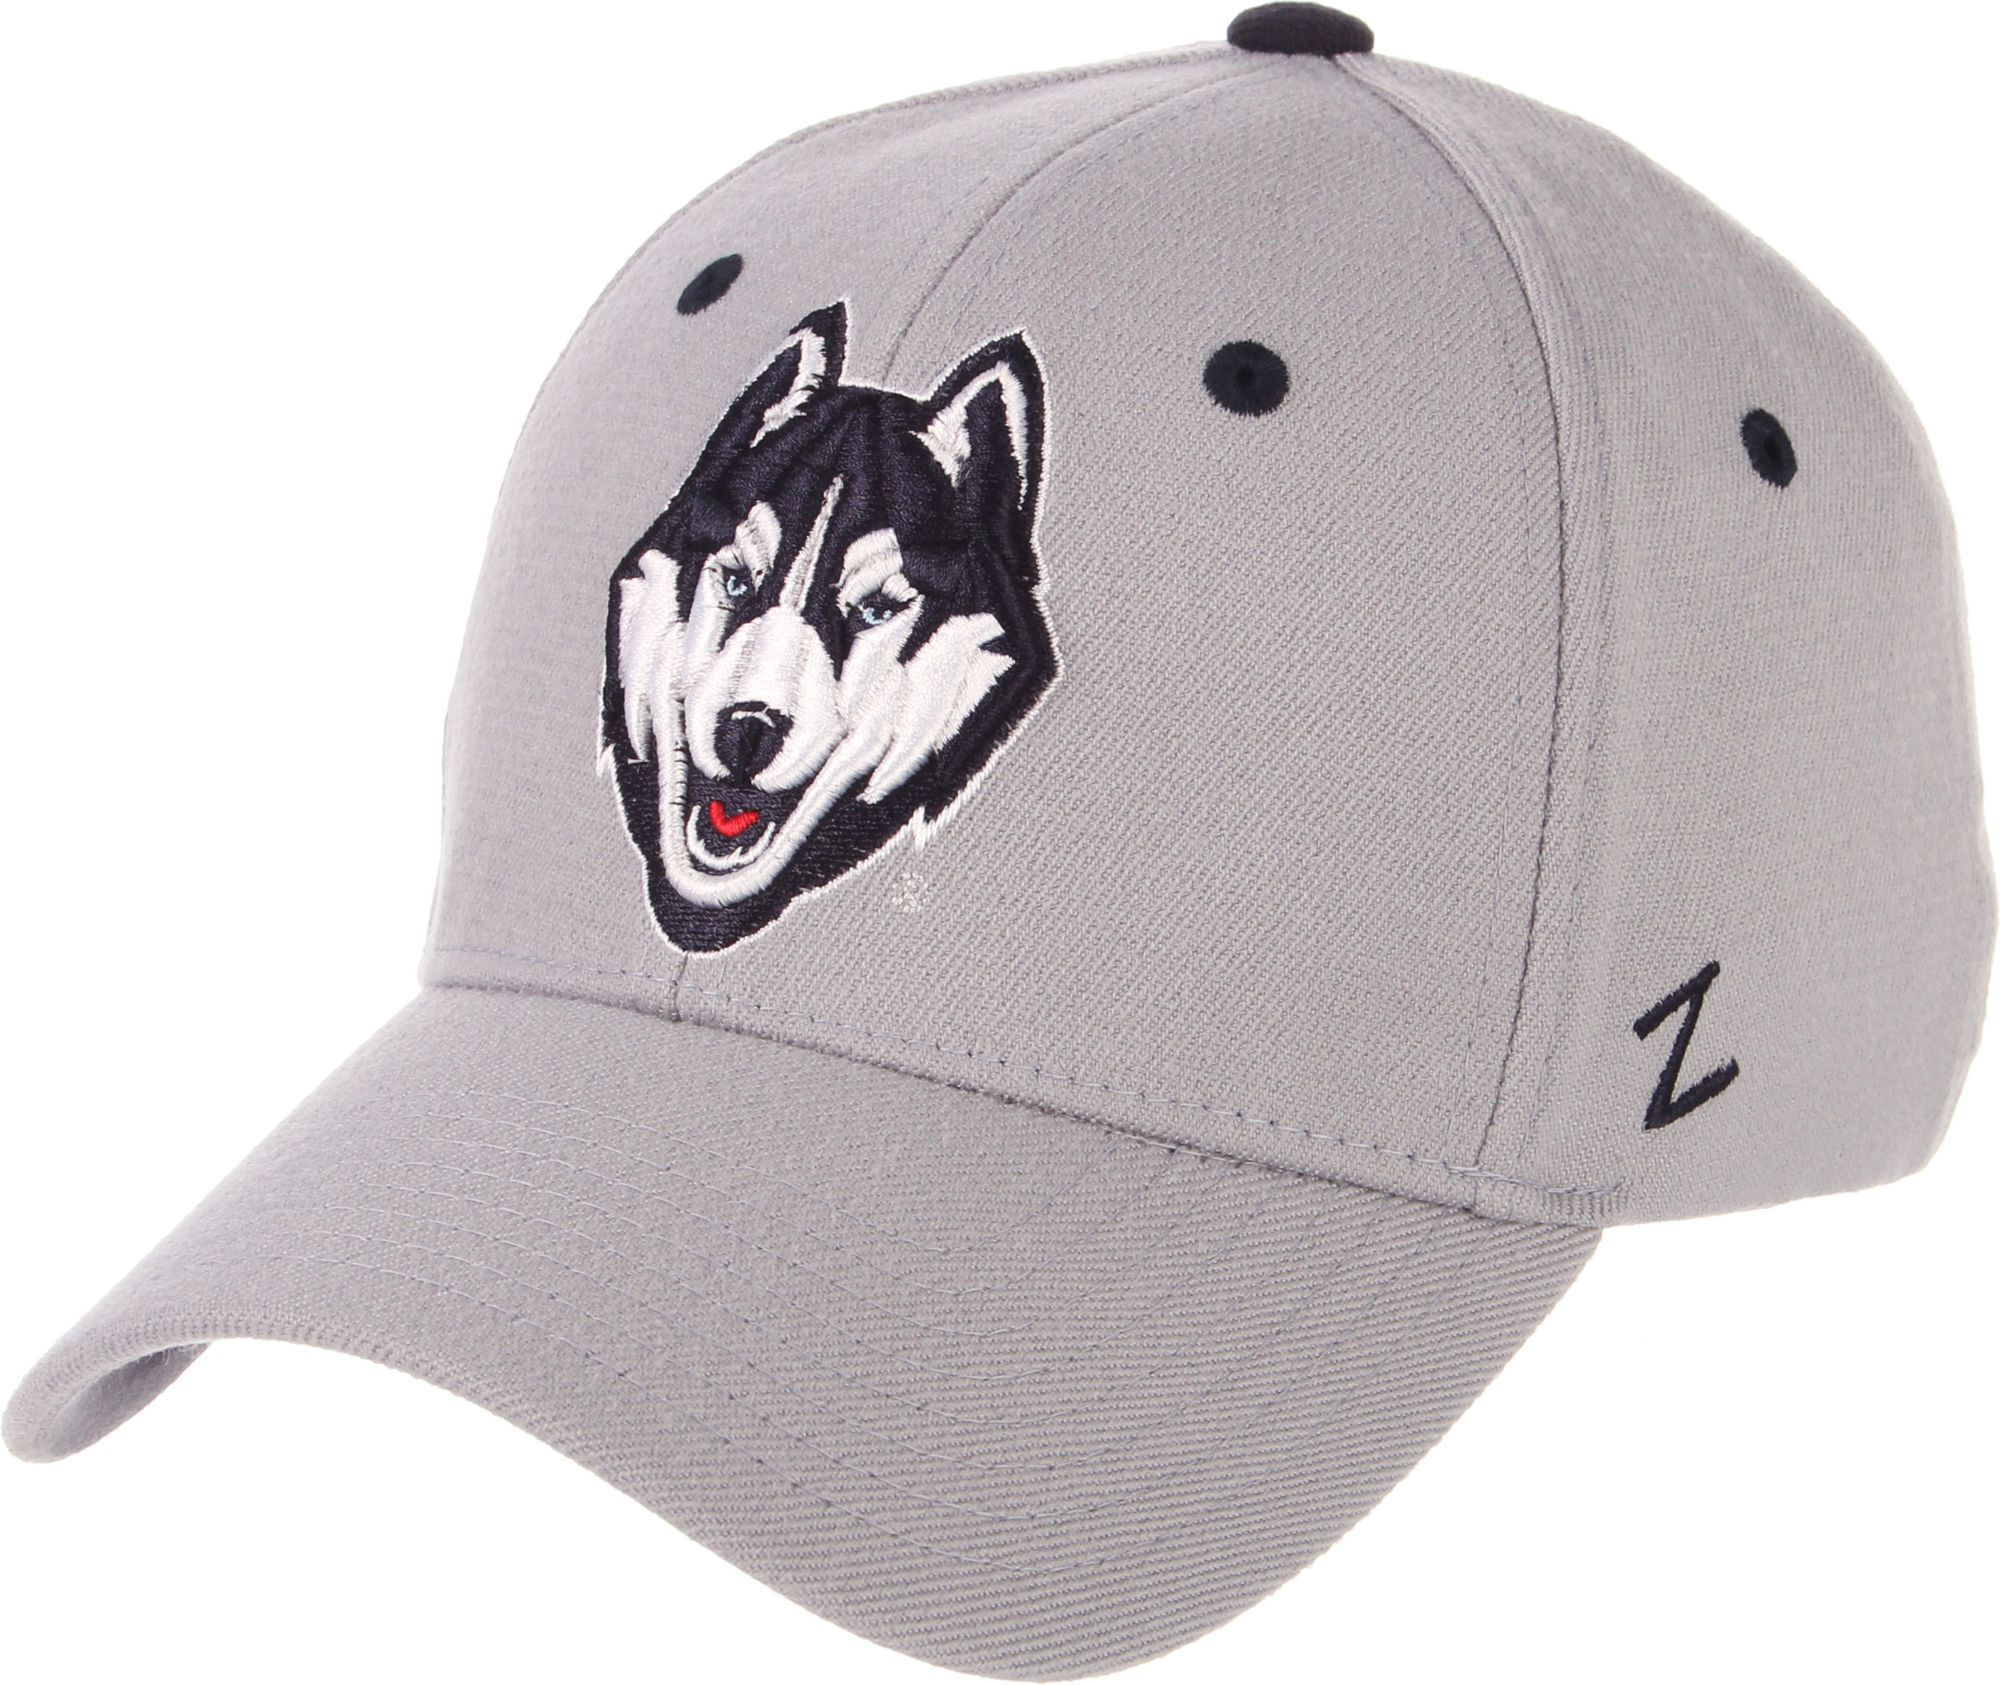 best loved 2121f 1c14c Zephyr Men s UConn Huskies Grey Wool Fitted Hat, Size  Small, Team